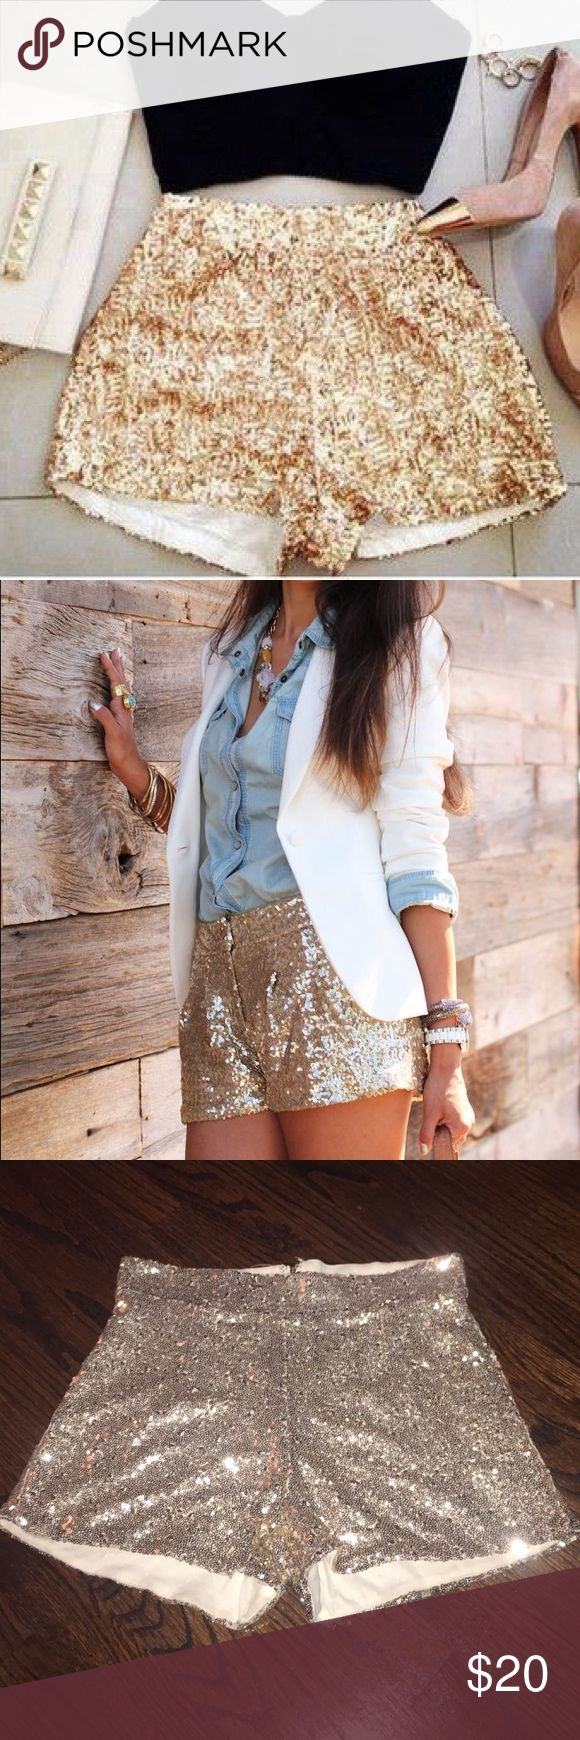 HOST PICK ✨Gold sequin shorts ✨ Gold sequined shorts with back zipper closure. Super hot on :) wear them with tights. Dress them up or down ⭐️ Shorts